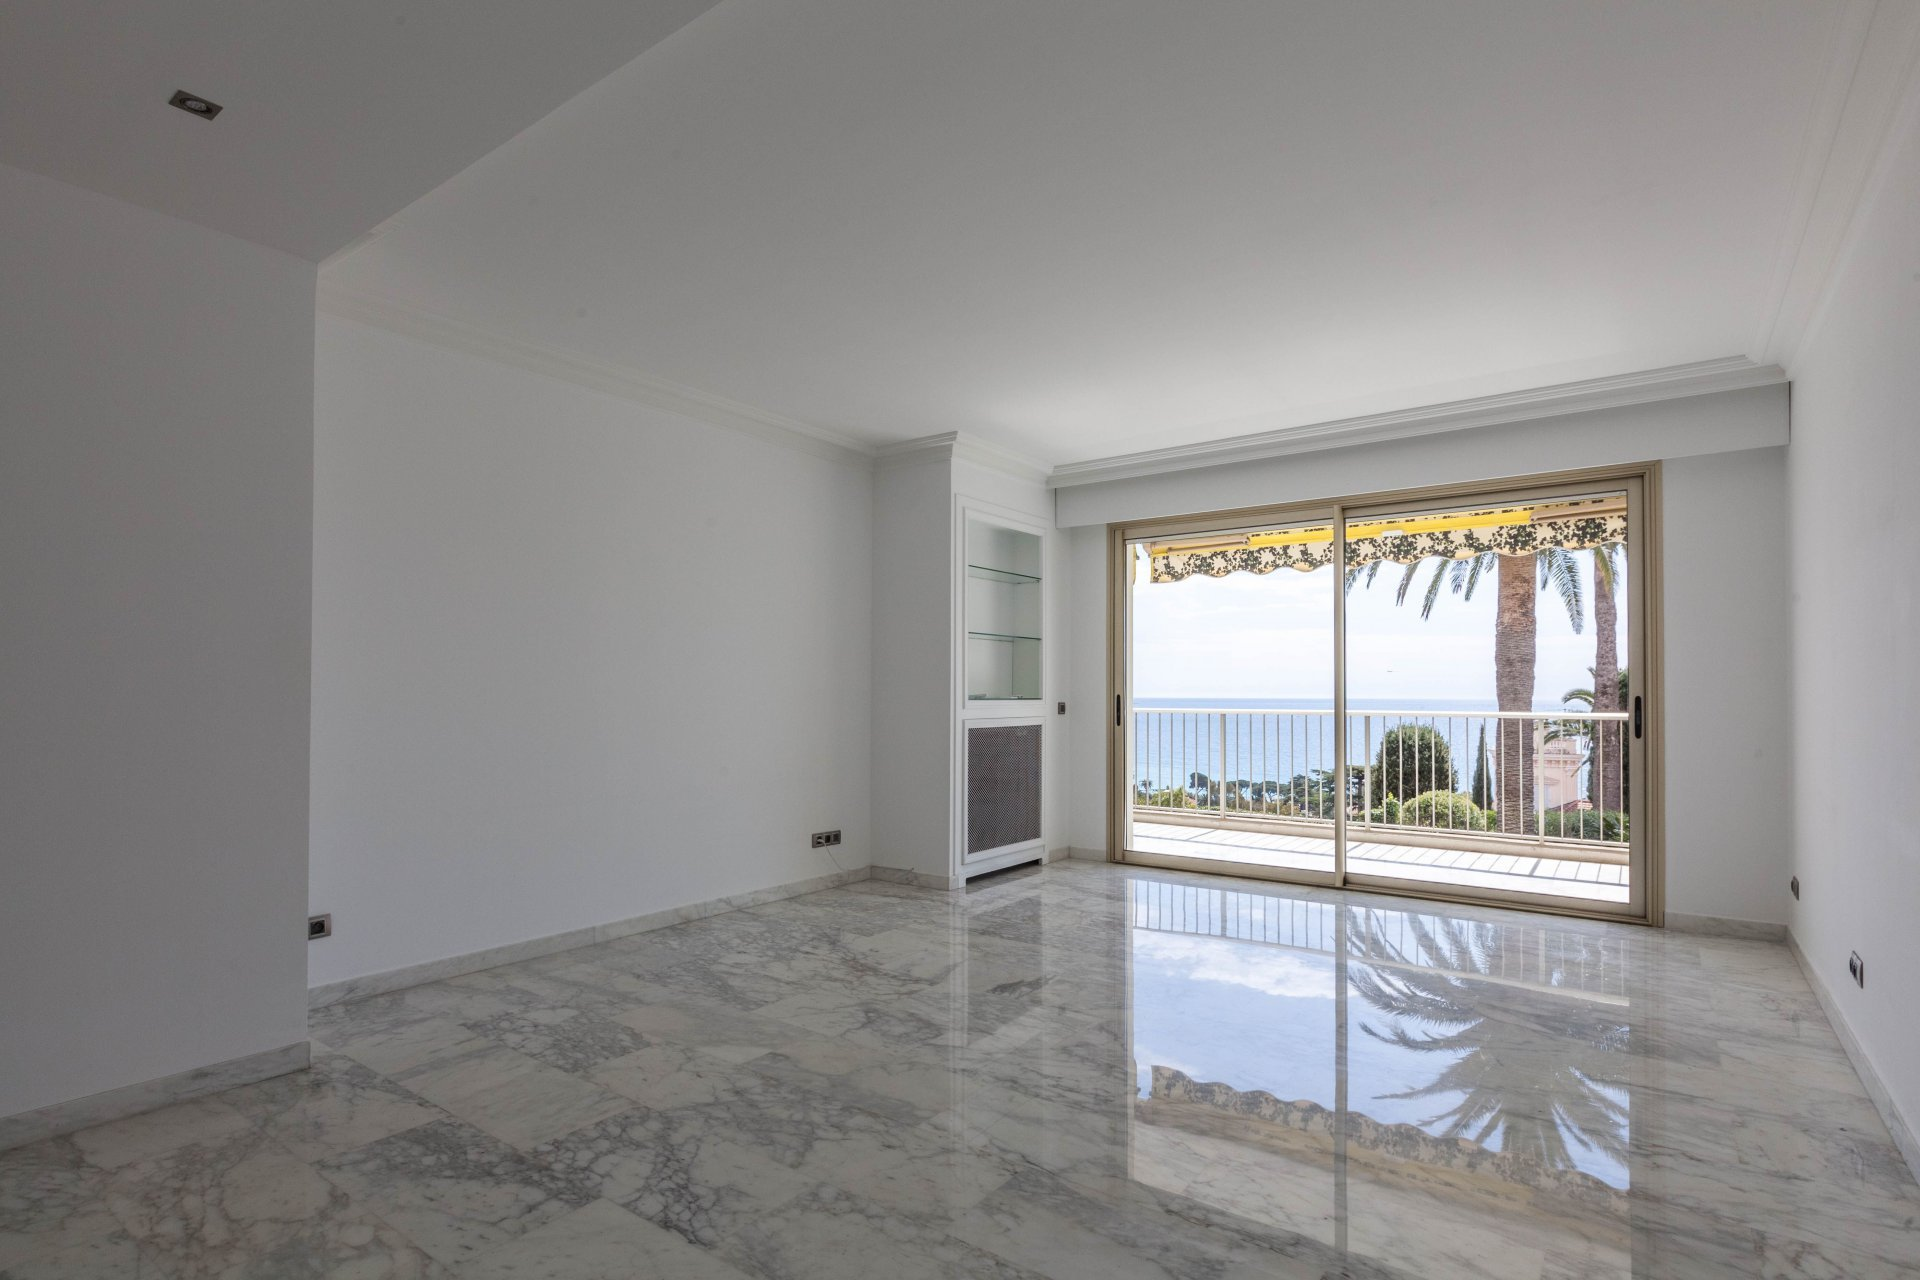 VENTE - CANNES - APPARTEMENT 4P 113M² + 23M² Ter. SUD VUE MER PANORAMIQUE